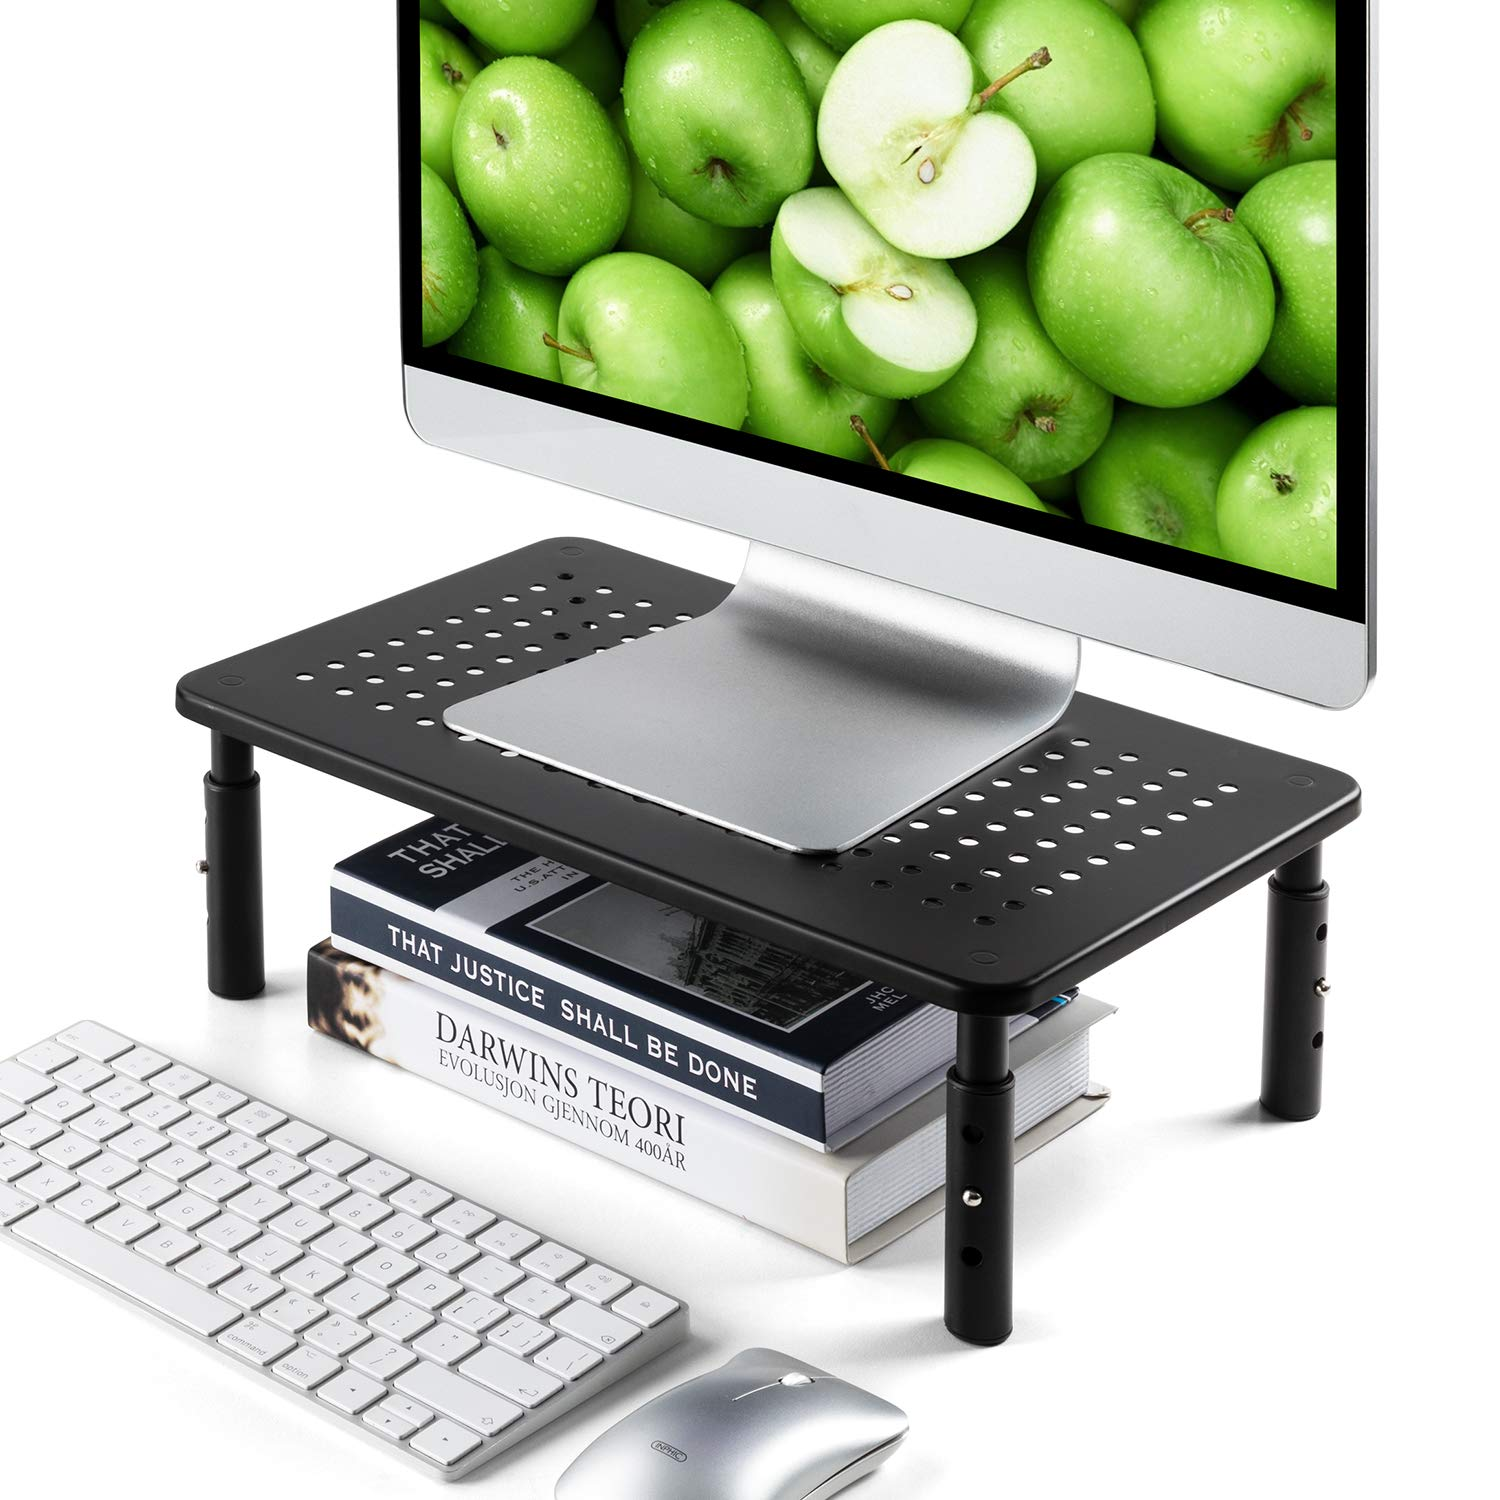 LORYERGO Monitor Stand - 3 Height Adjustable Computer Stand, Laptop Stand Riser w/Metal Vented Platform, Monitor Riser Stand for Printer, Laptop, PC, Desktop Stand for Office & Home